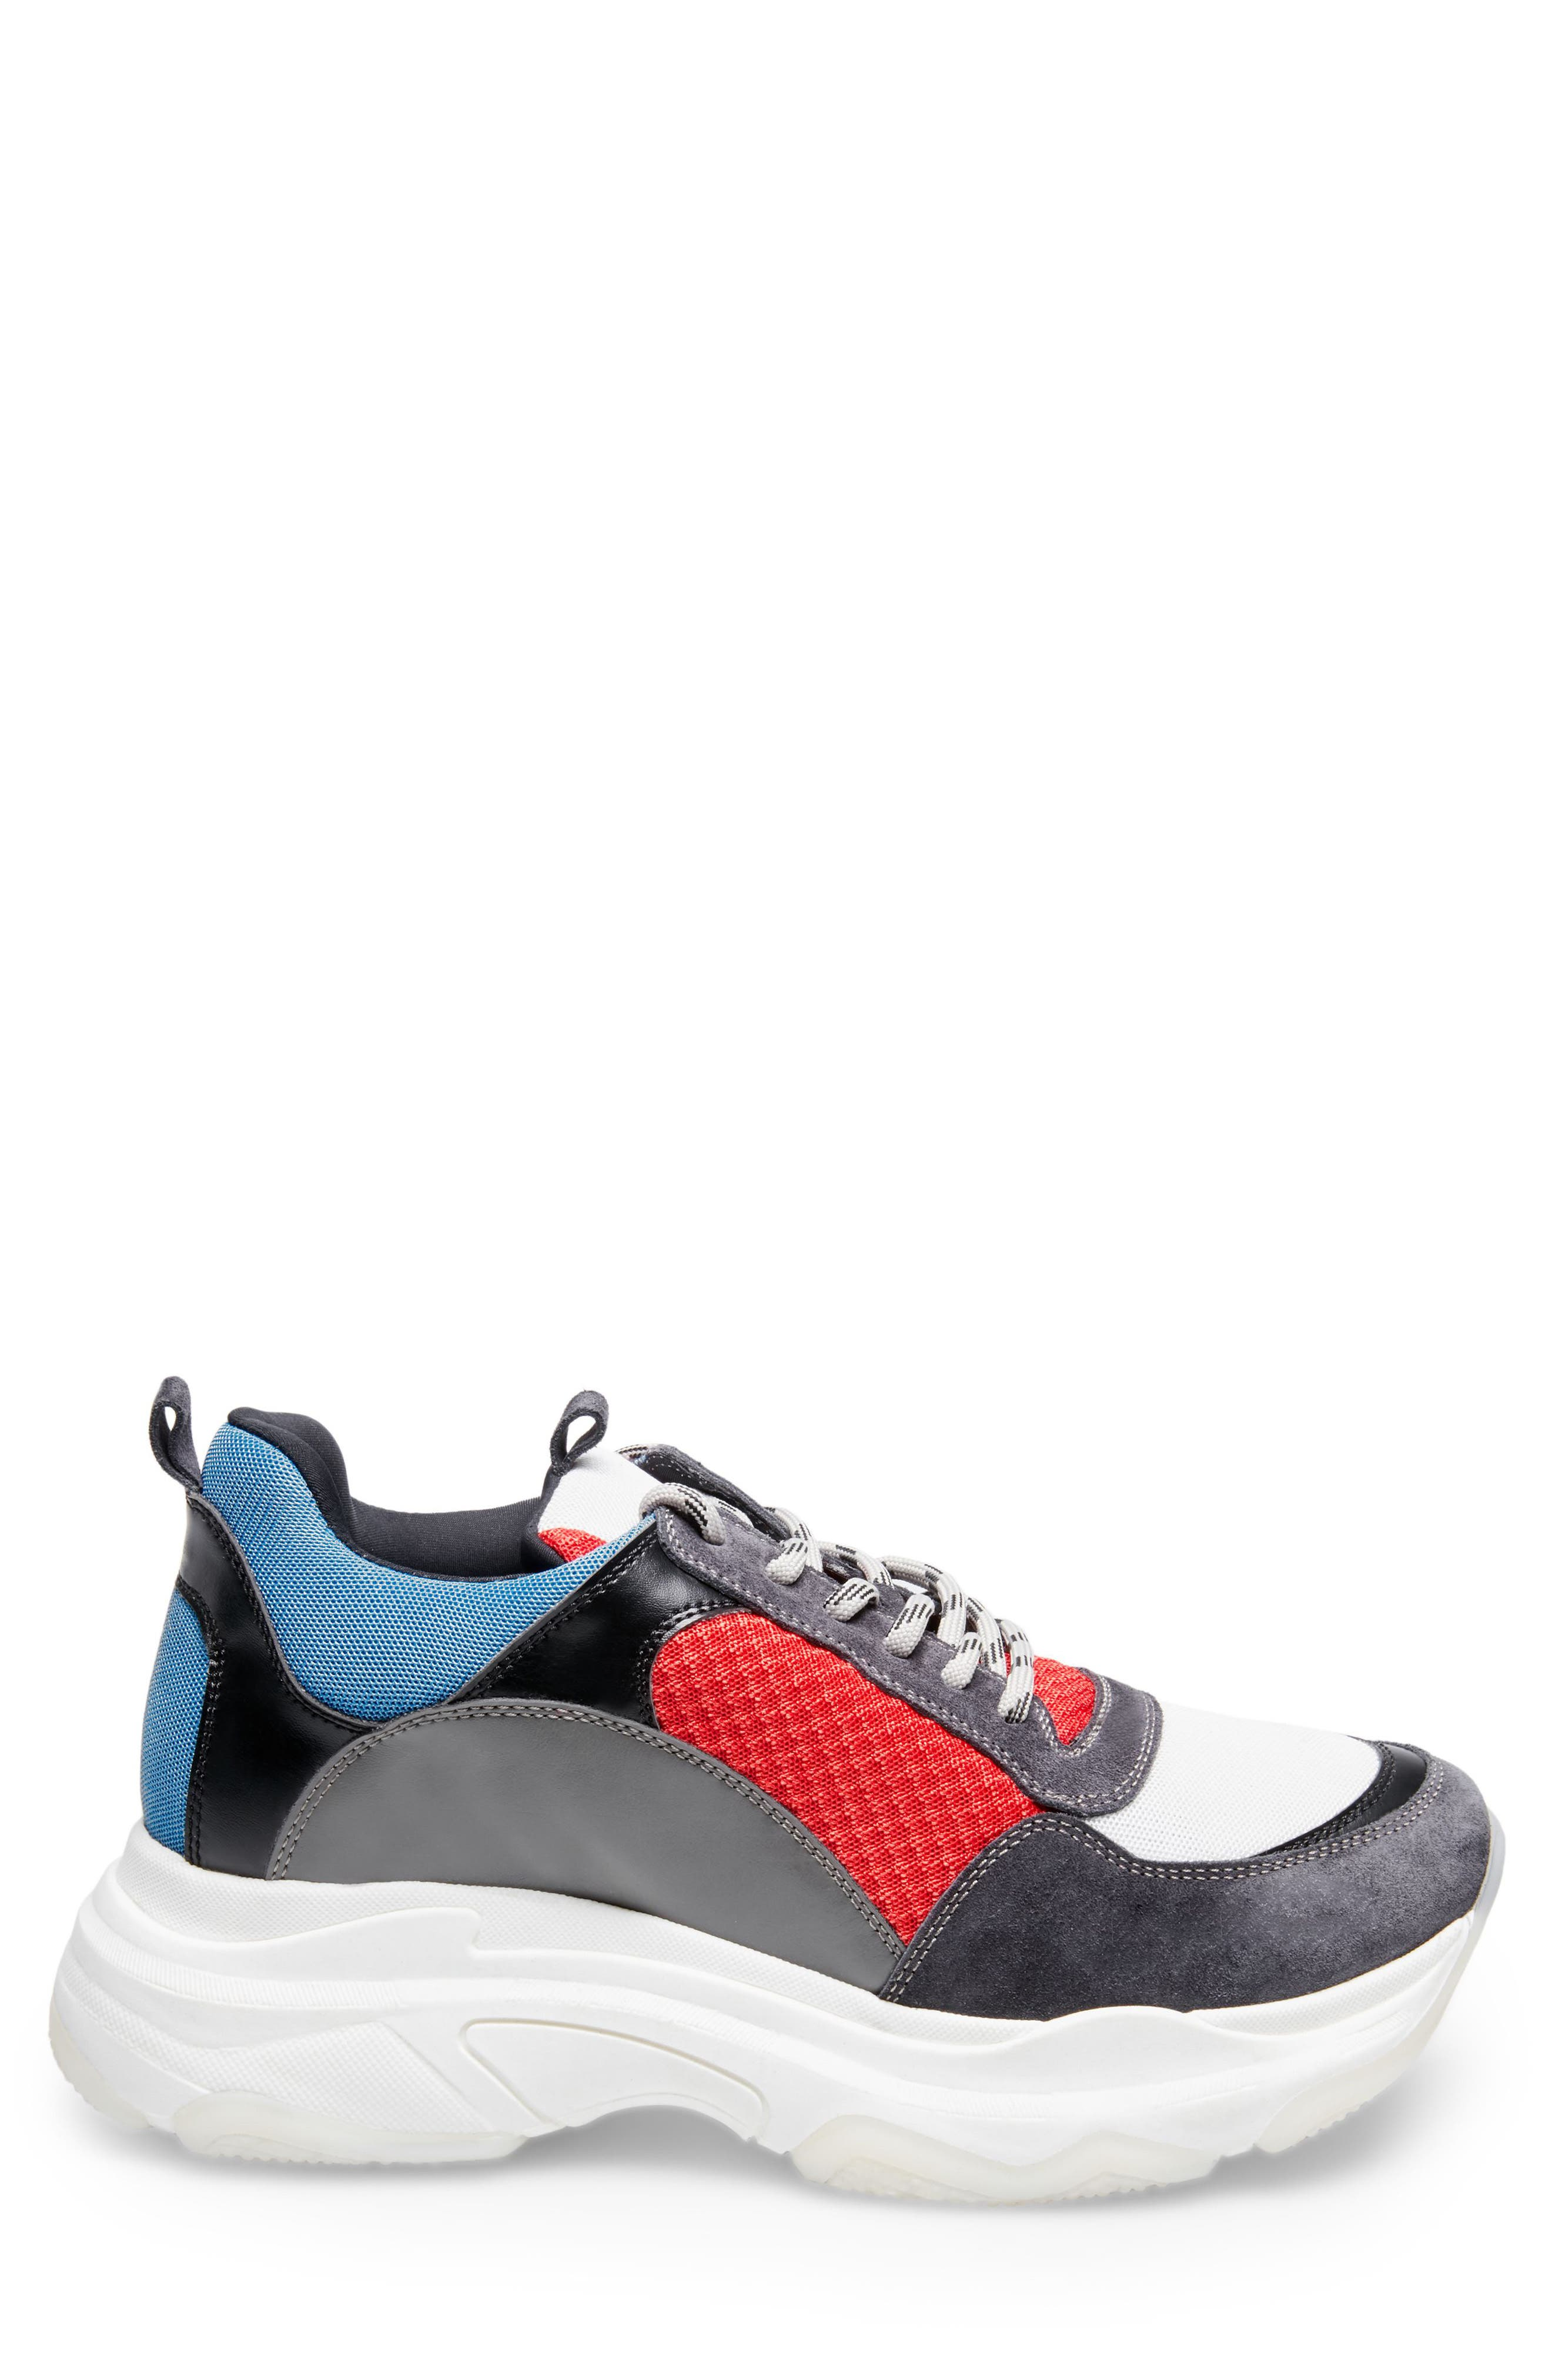 Russell Platform Sneaker,                             Alternate thumbnail 2, color,                             MULTI LEATHER